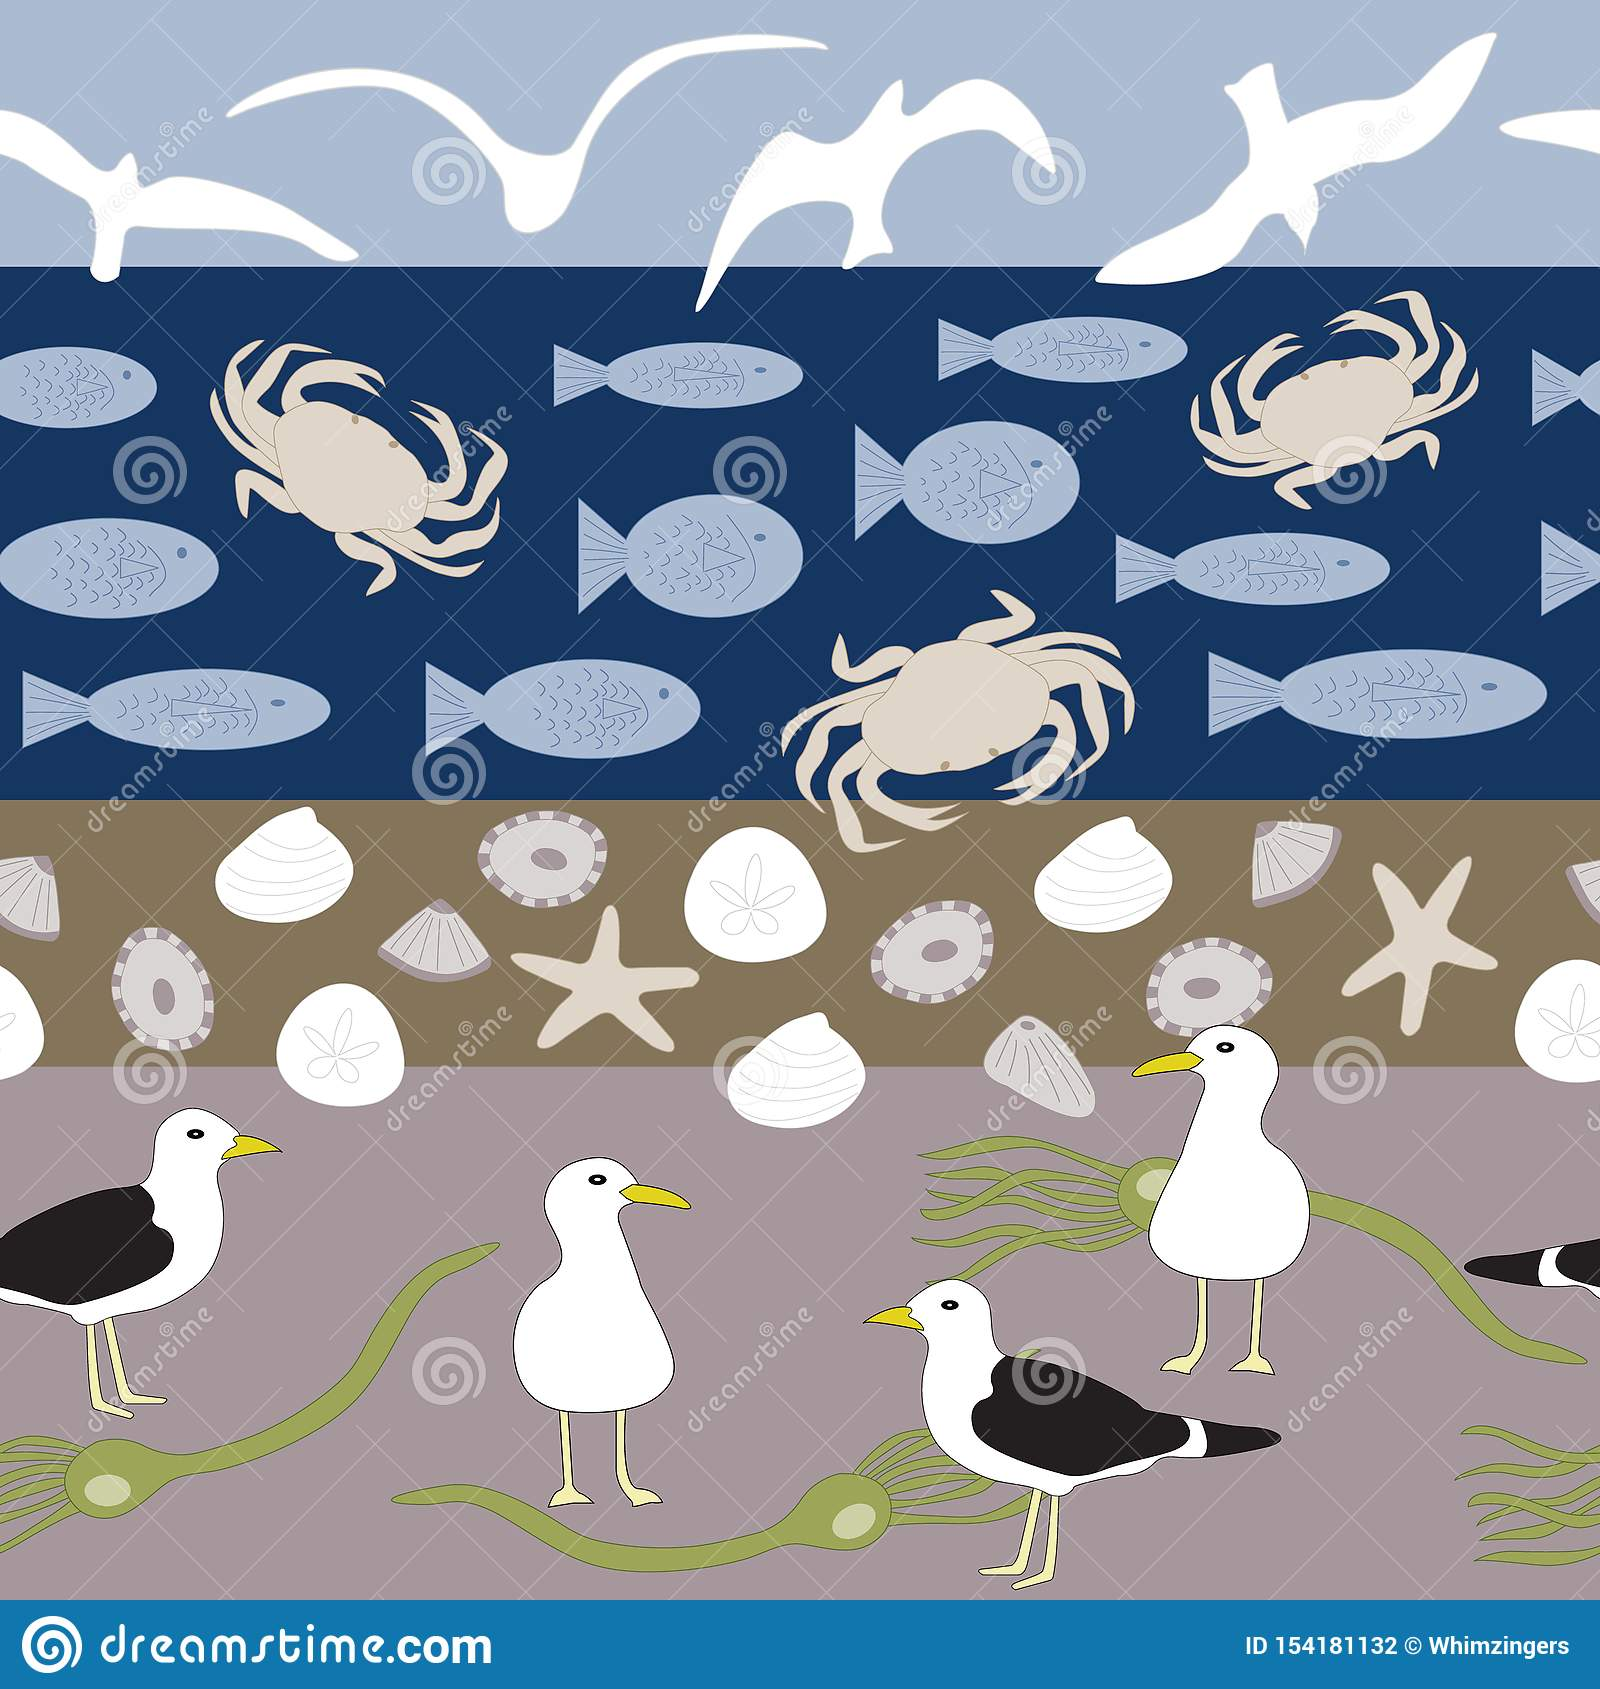 Vector Beach Scene with Birds, Shells, Fish, Crabs and Seaweed Seamless Repeat Pattern